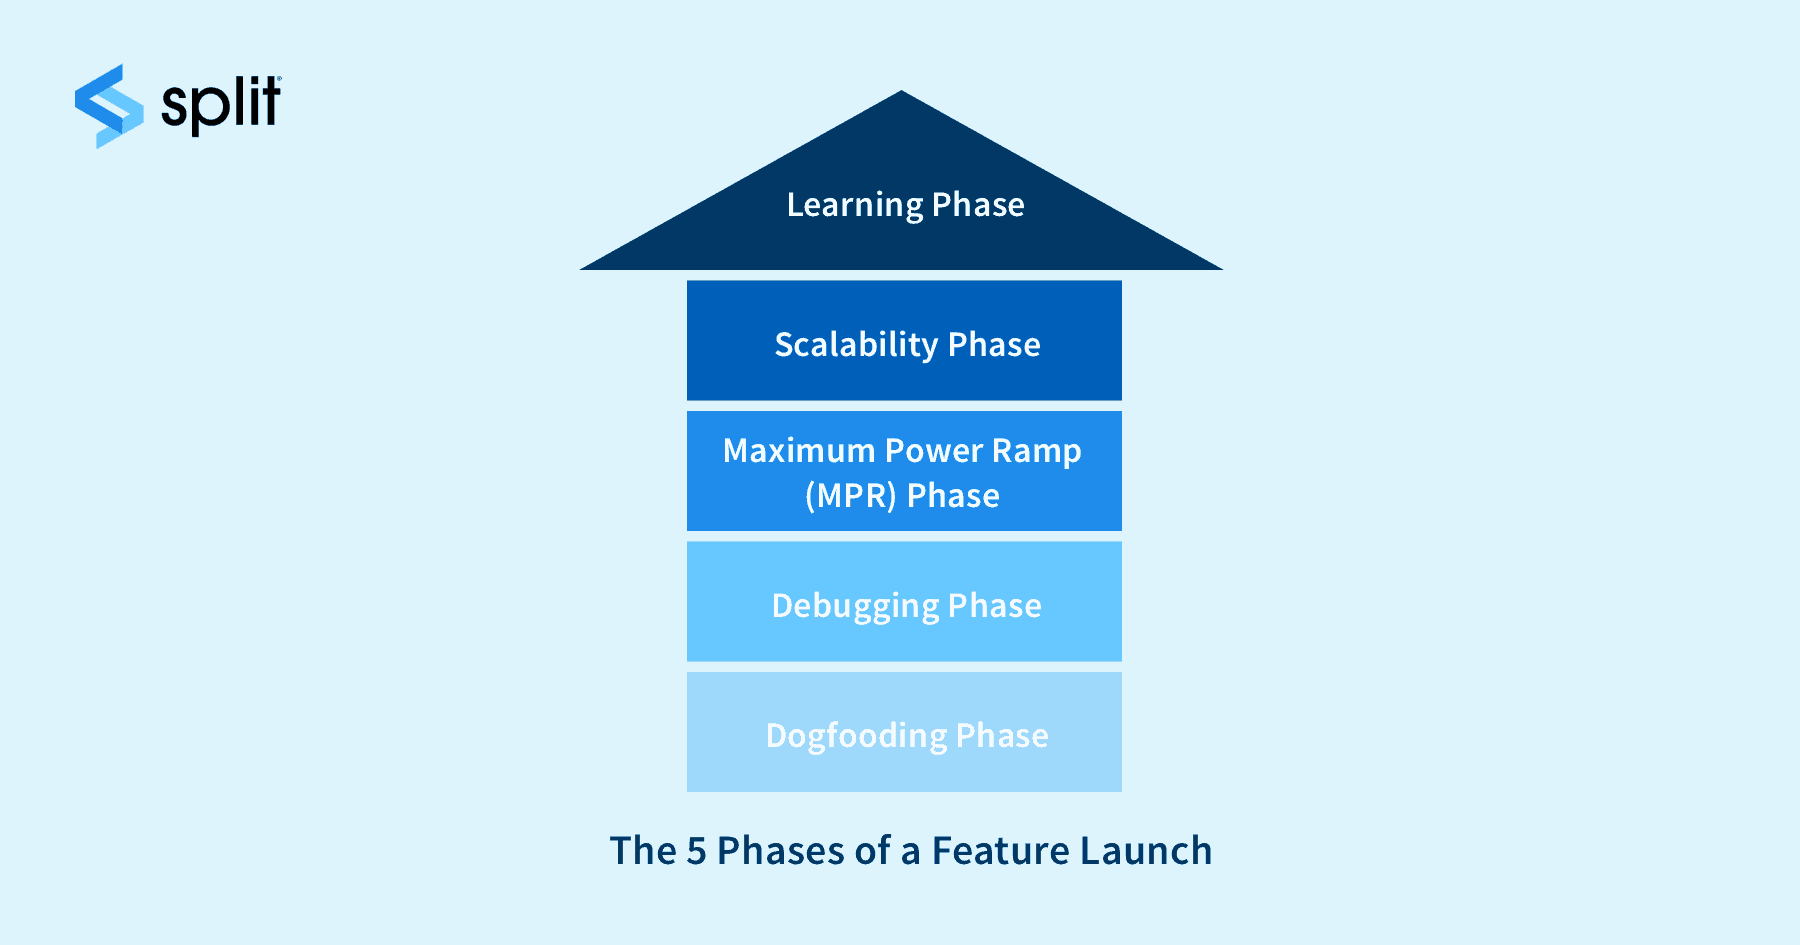 blog-the-5-phases-of-a-feature-launch-600x315-x3